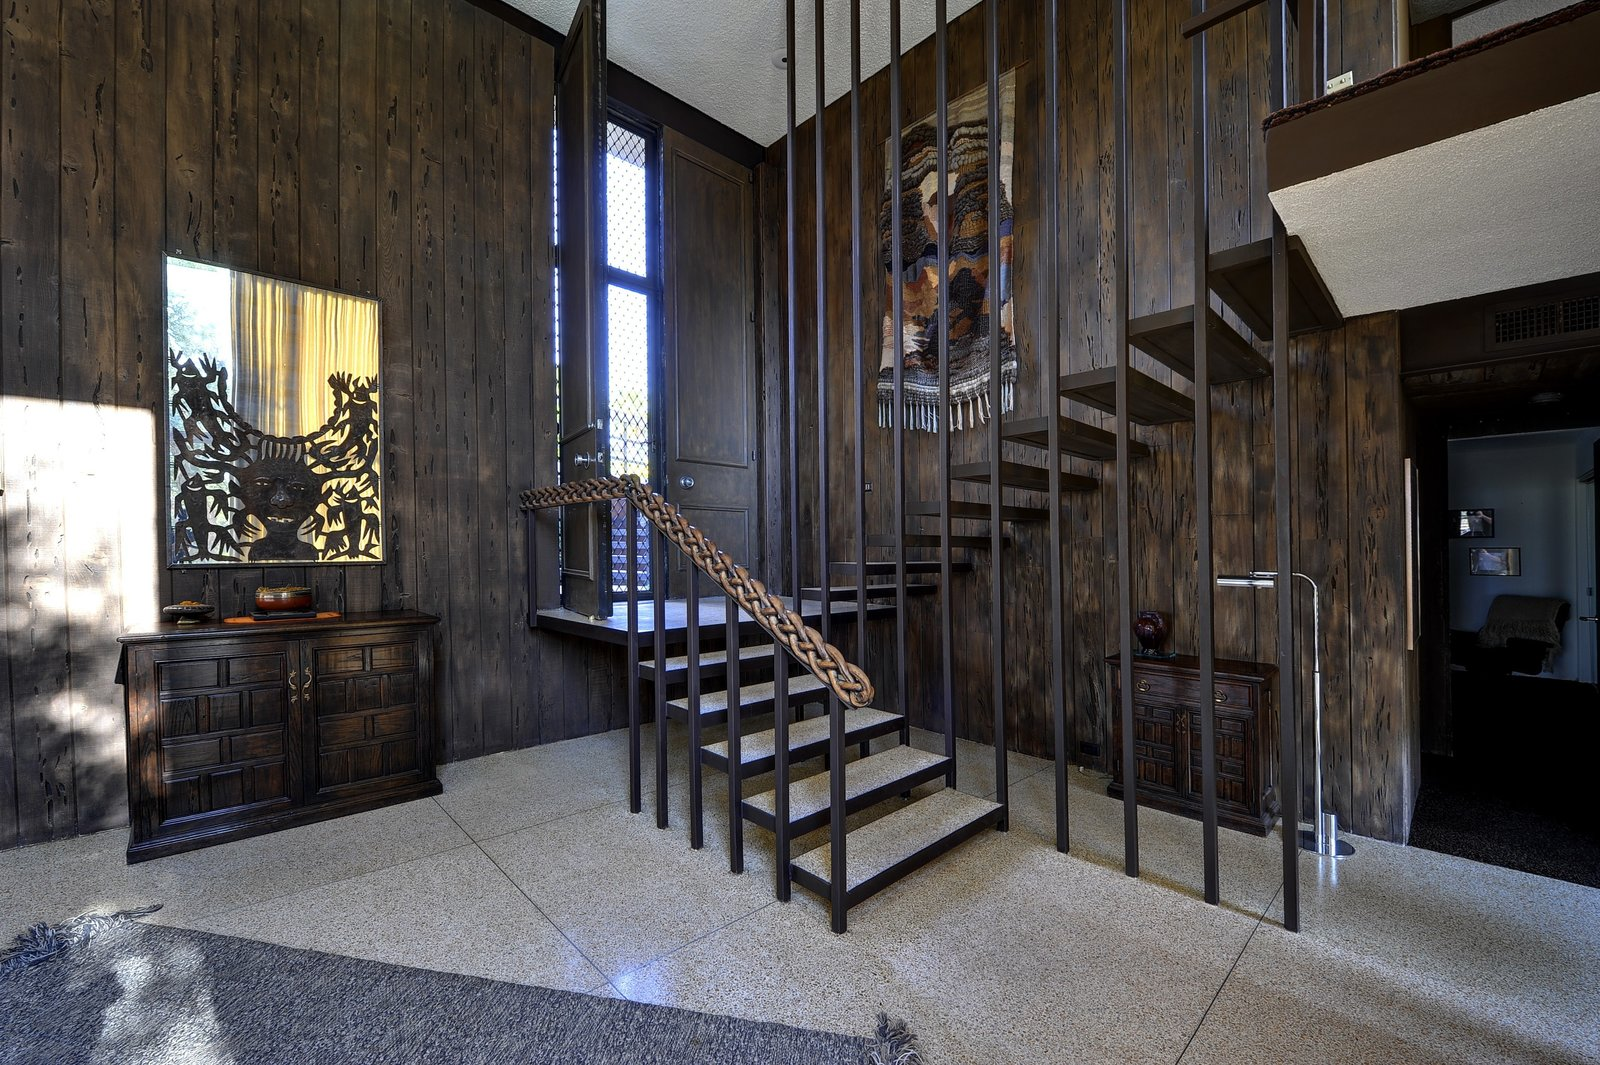 Follow in the footsteps of Steve McQueen as you take the stairs either down to the living space or up to the bedroom.